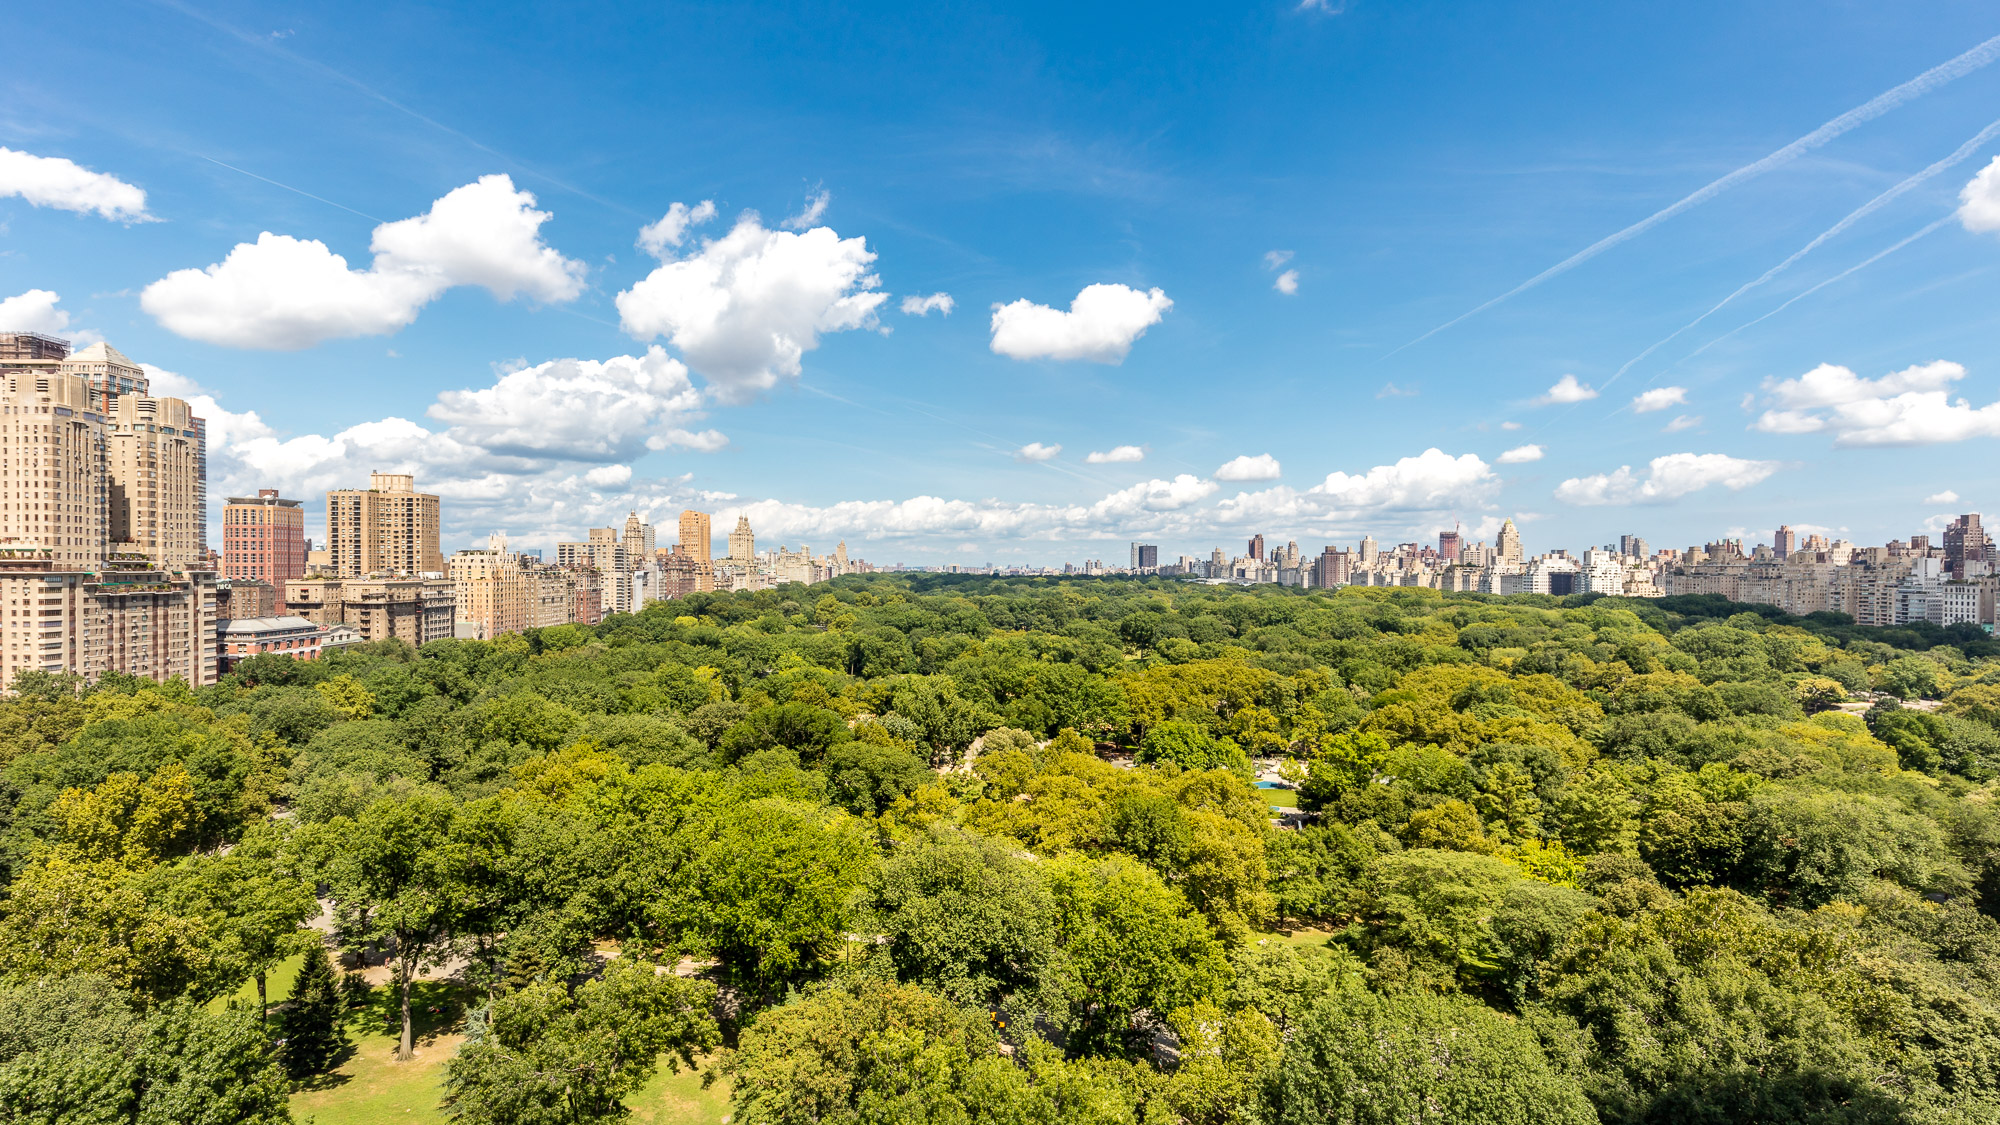 The treetops Central Park looking north on a bright blue sky day. Buildings rise in jagged spurts along the park's west and east boundaries.